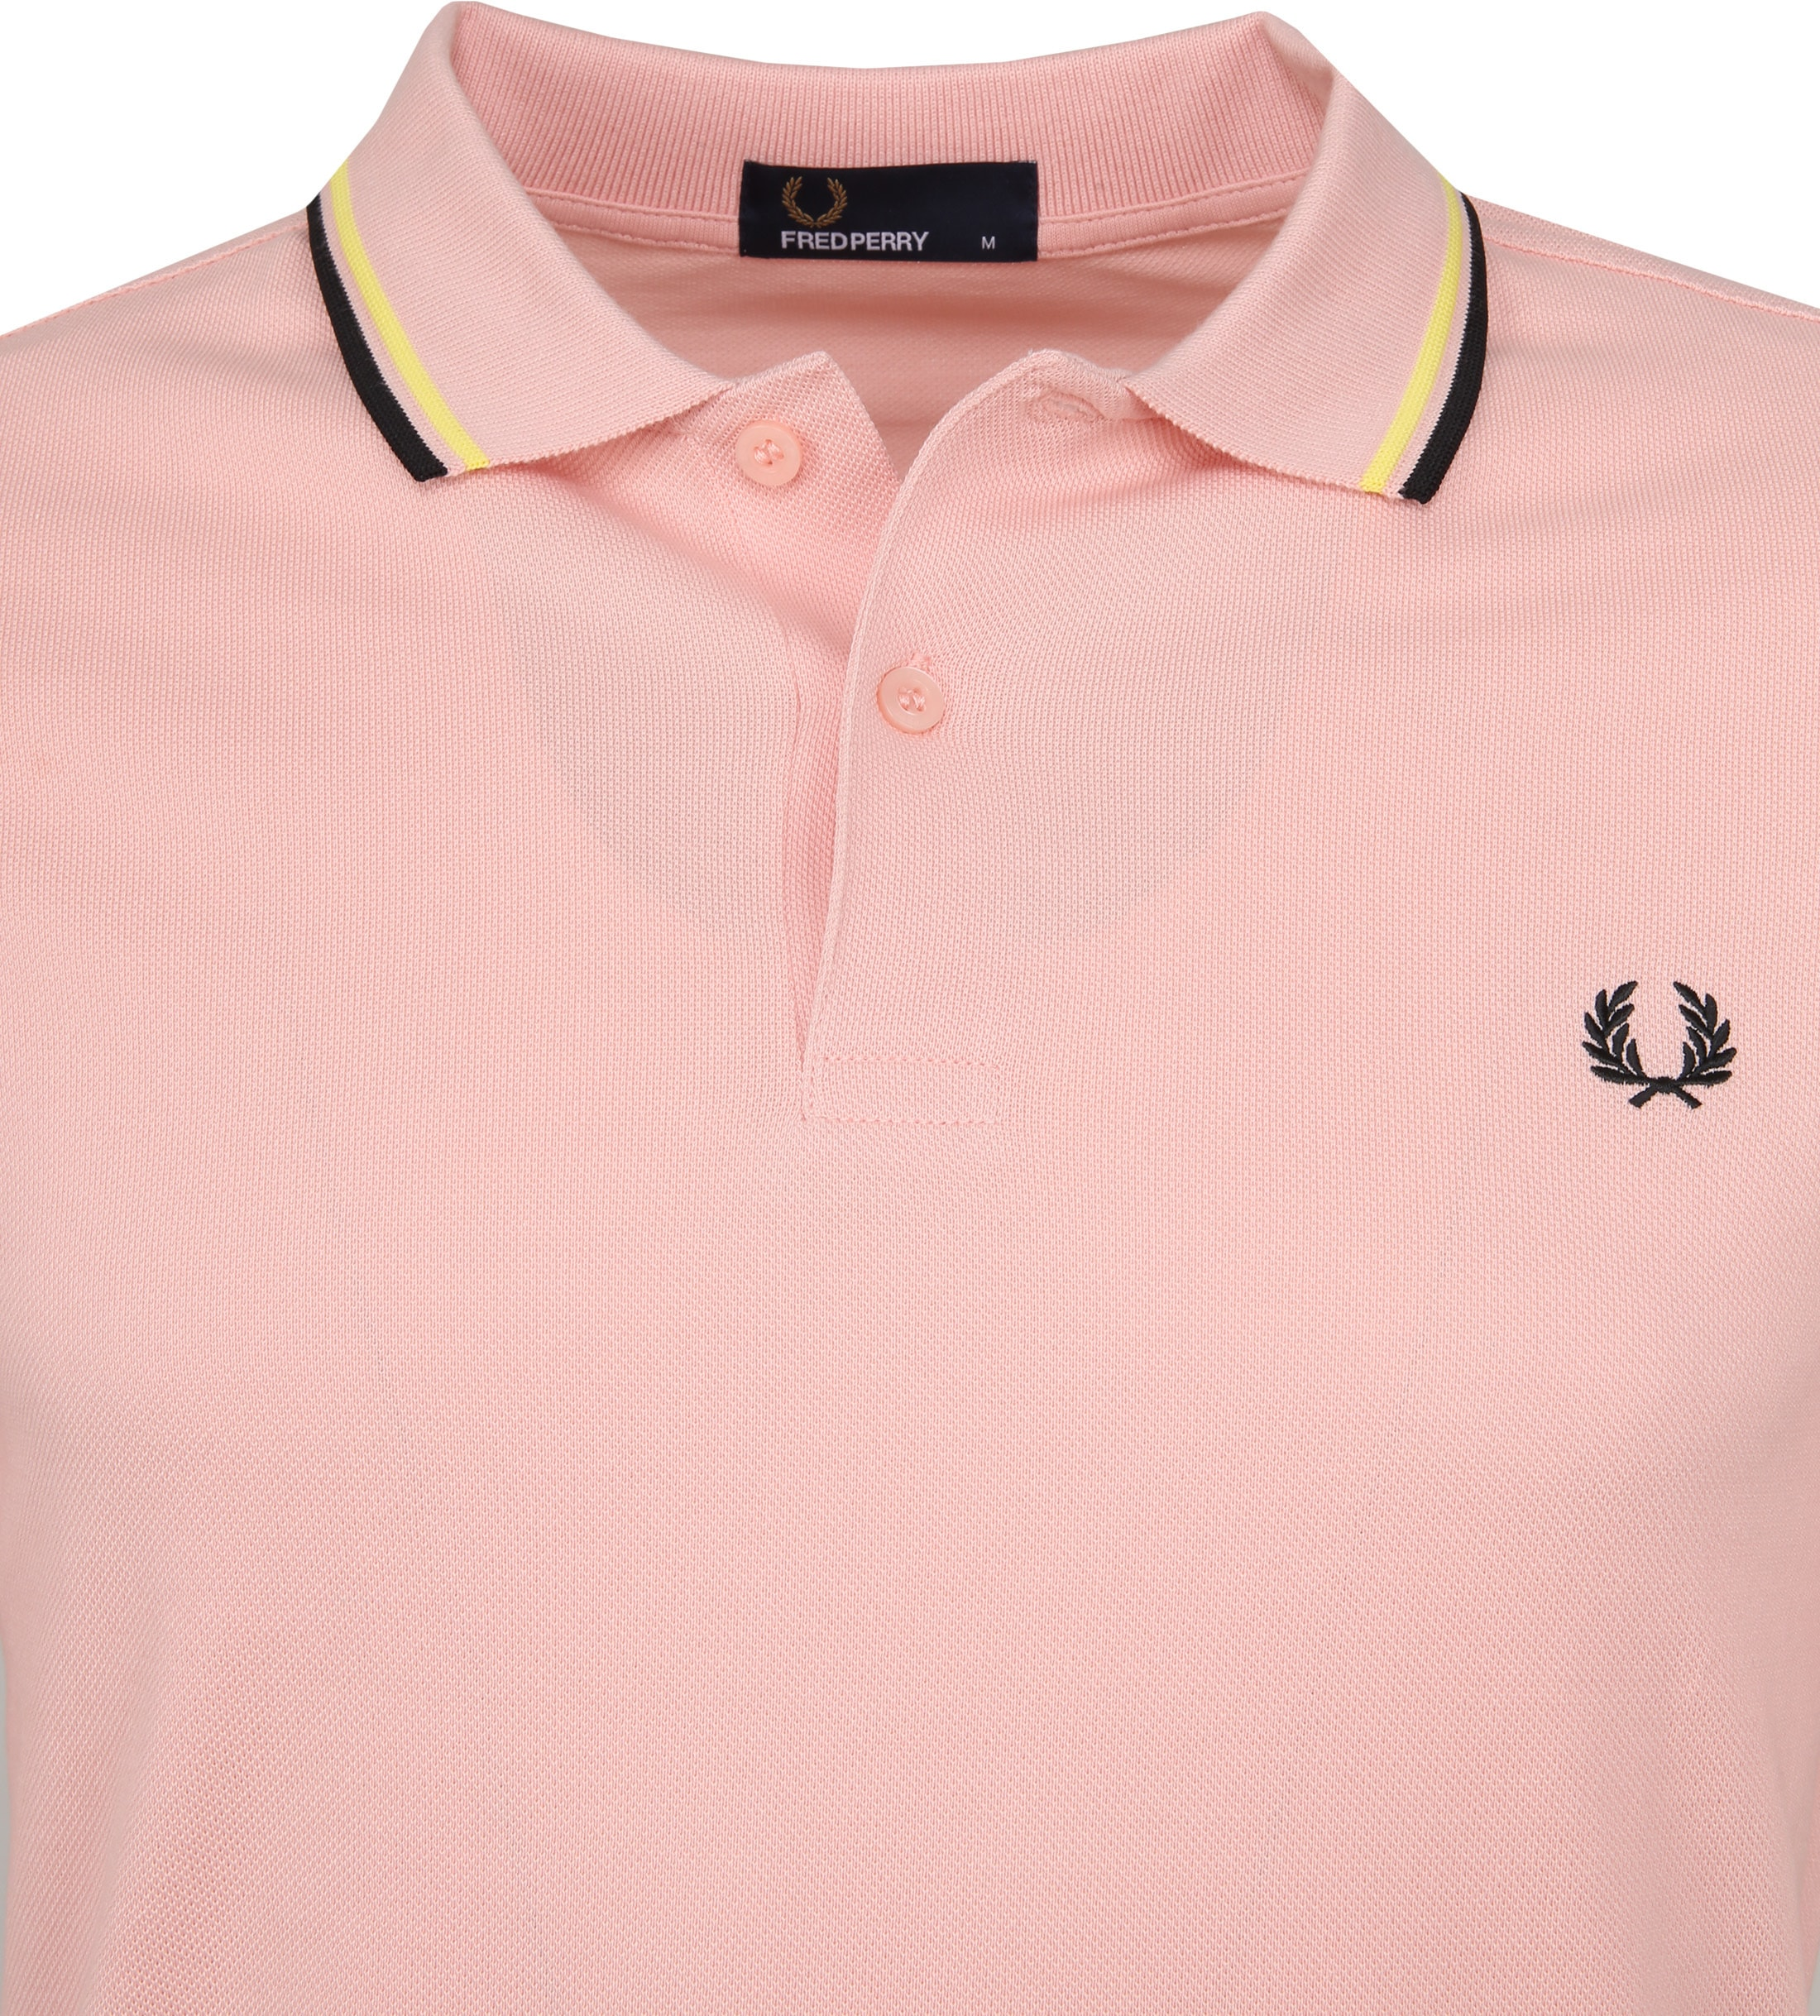 Fred Perry Poloshirt Pink 457 foto 1